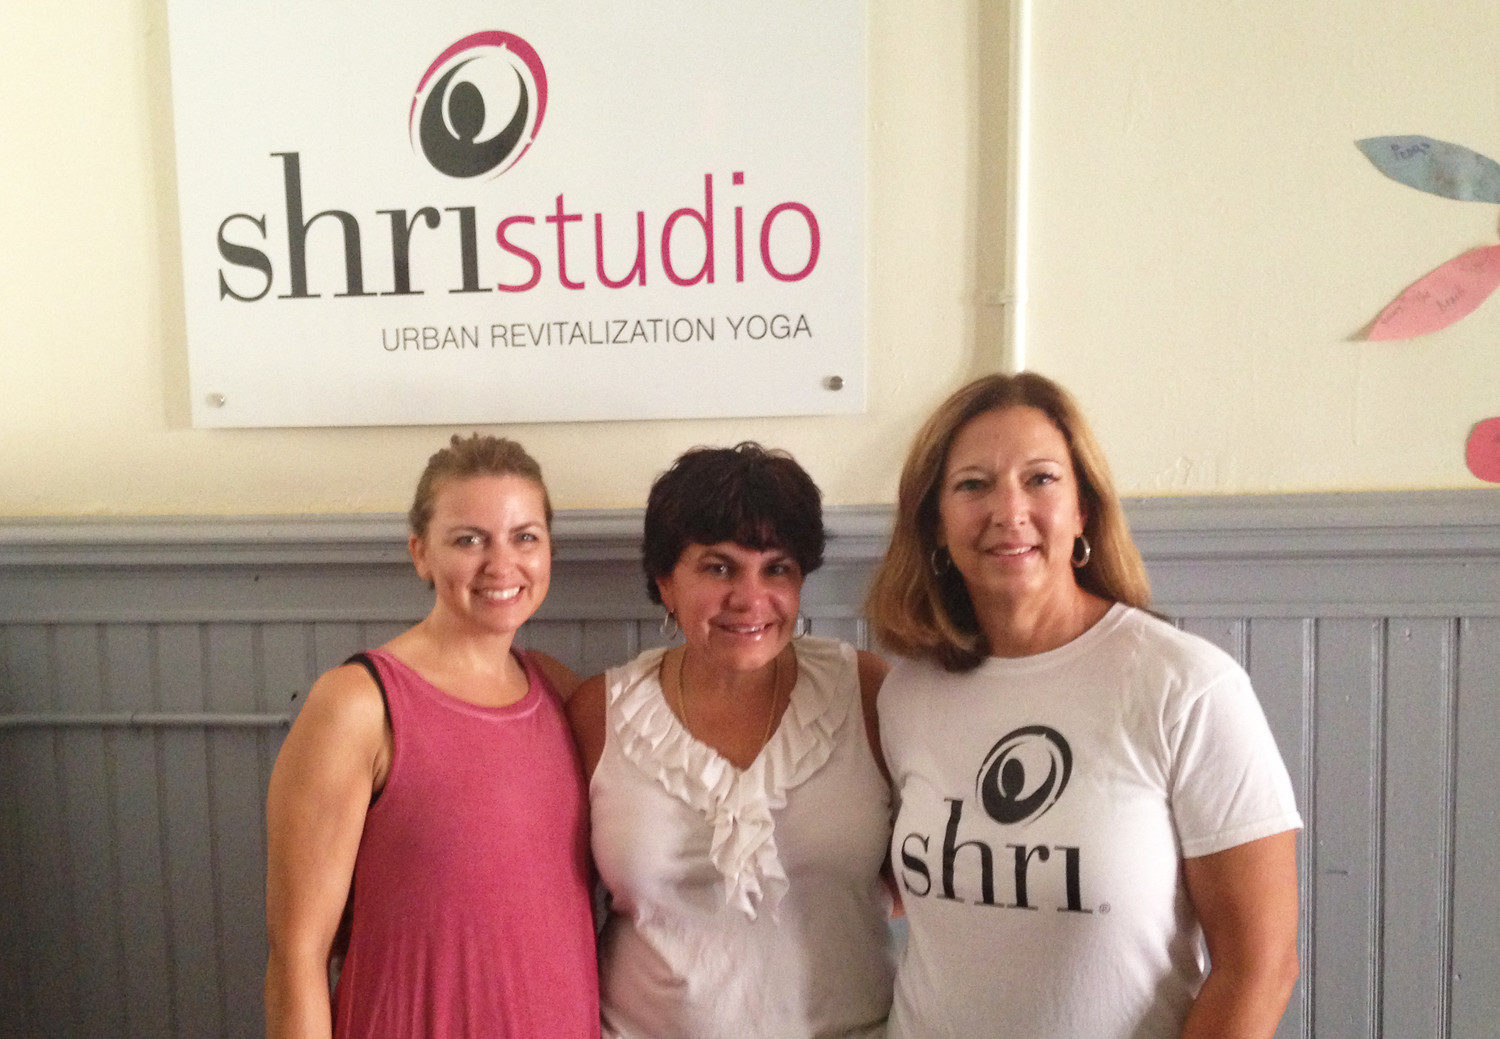 Charlene Breggia, left, instructor for the Yoga and Recovery class at Shri Yoga studio; Donna McDonald,a nurse who helped to set up the private yoga class for women from Eastman House, and Robin Sousa, right, a yoga instructor with Shri Yoga.